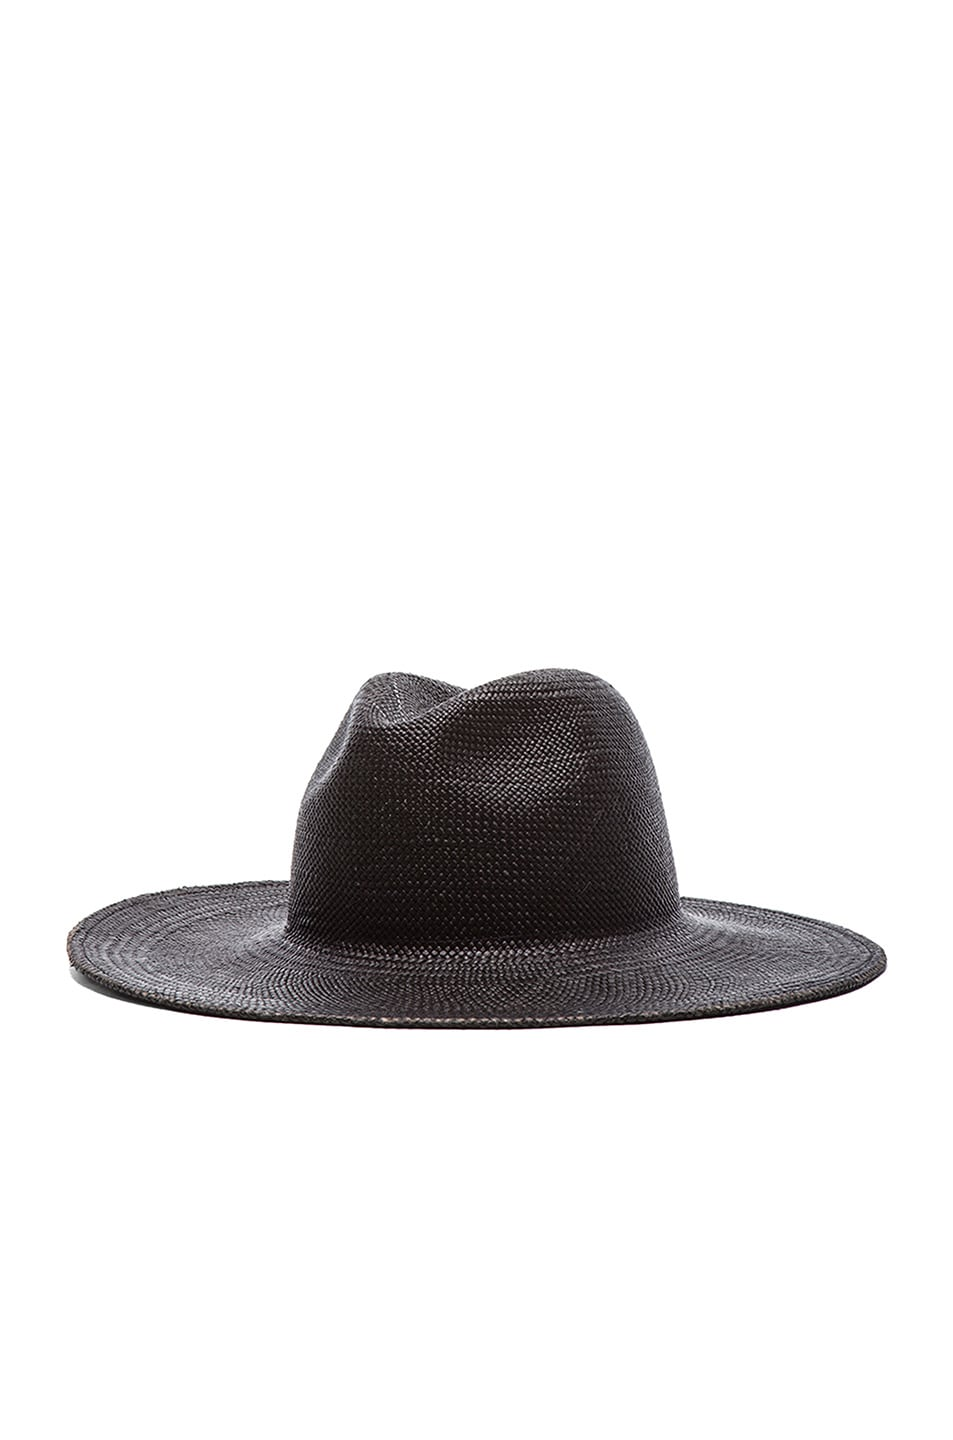 Image 3 of Janessa Leone Rita Straw Hat in Black